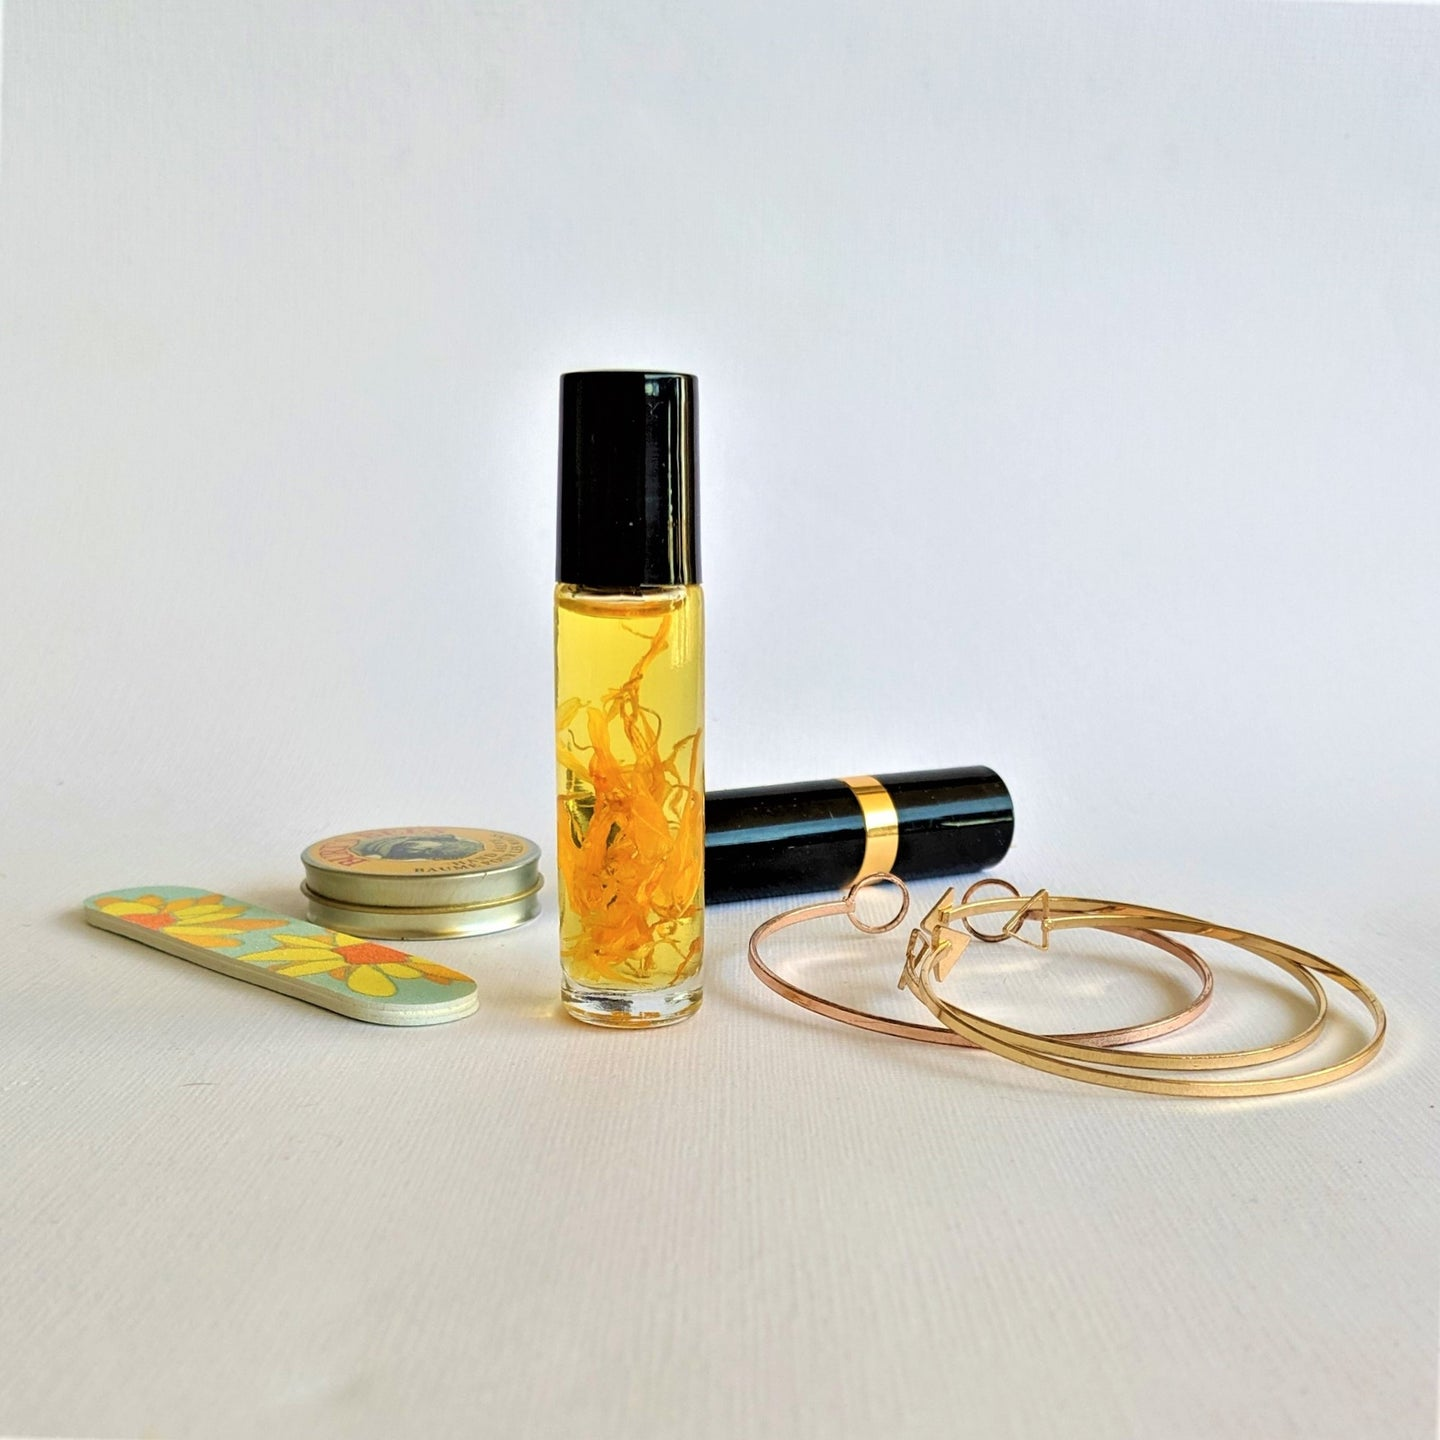 The Swirl Box Calendula Essential Oil Roller